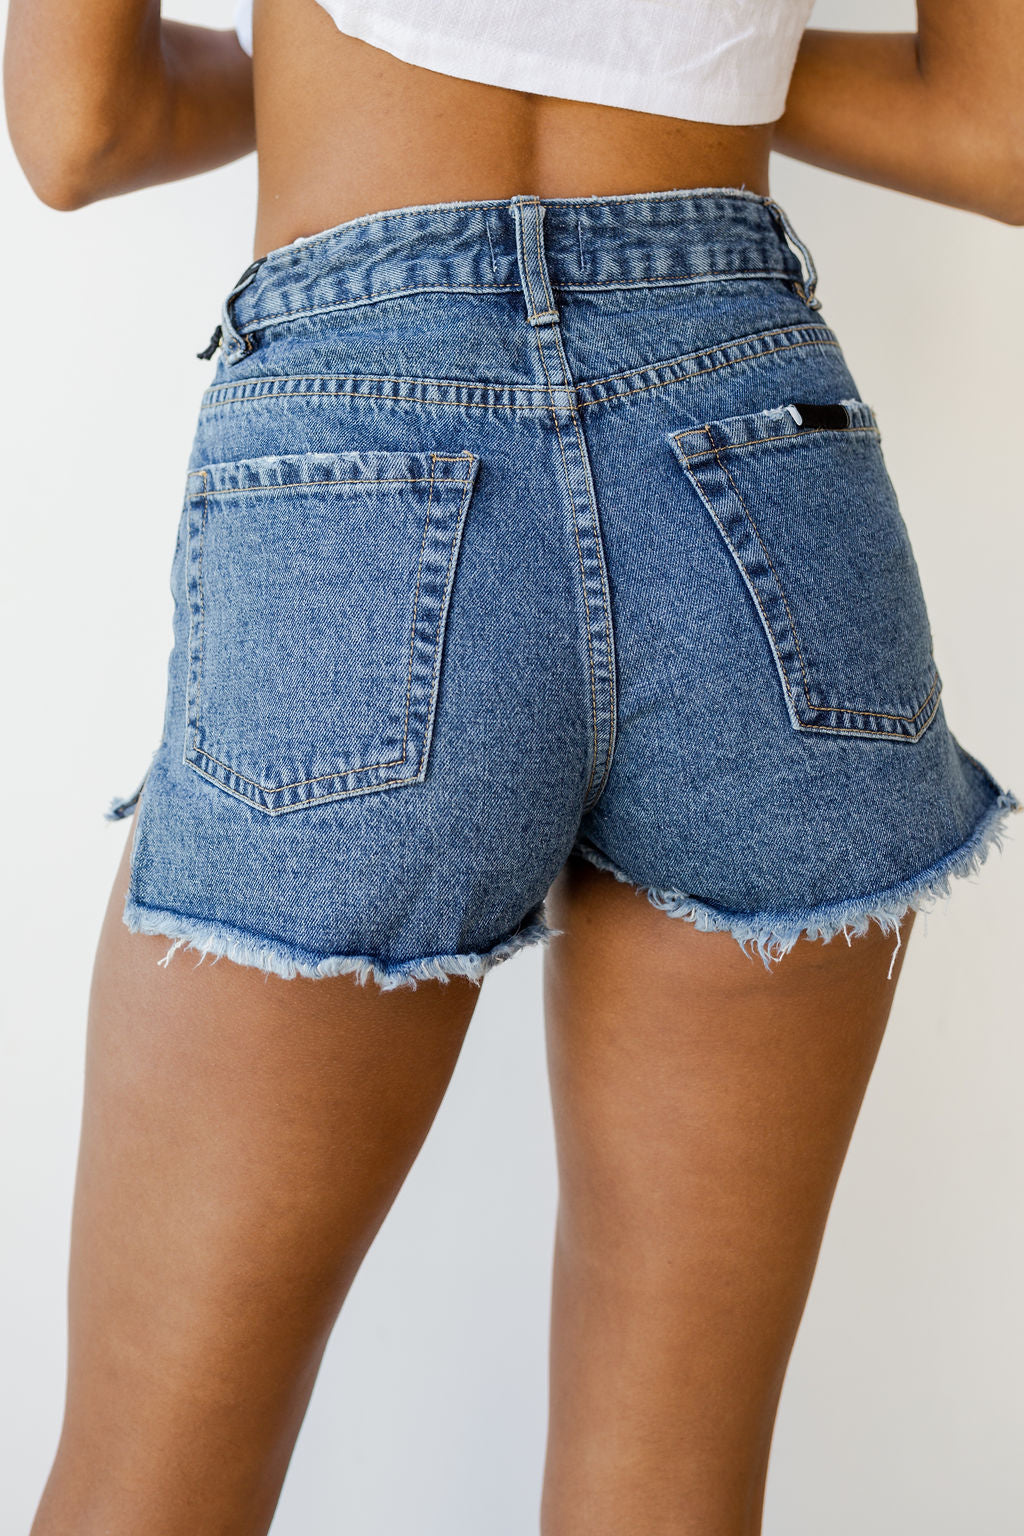 mode, shoreline denim shorts